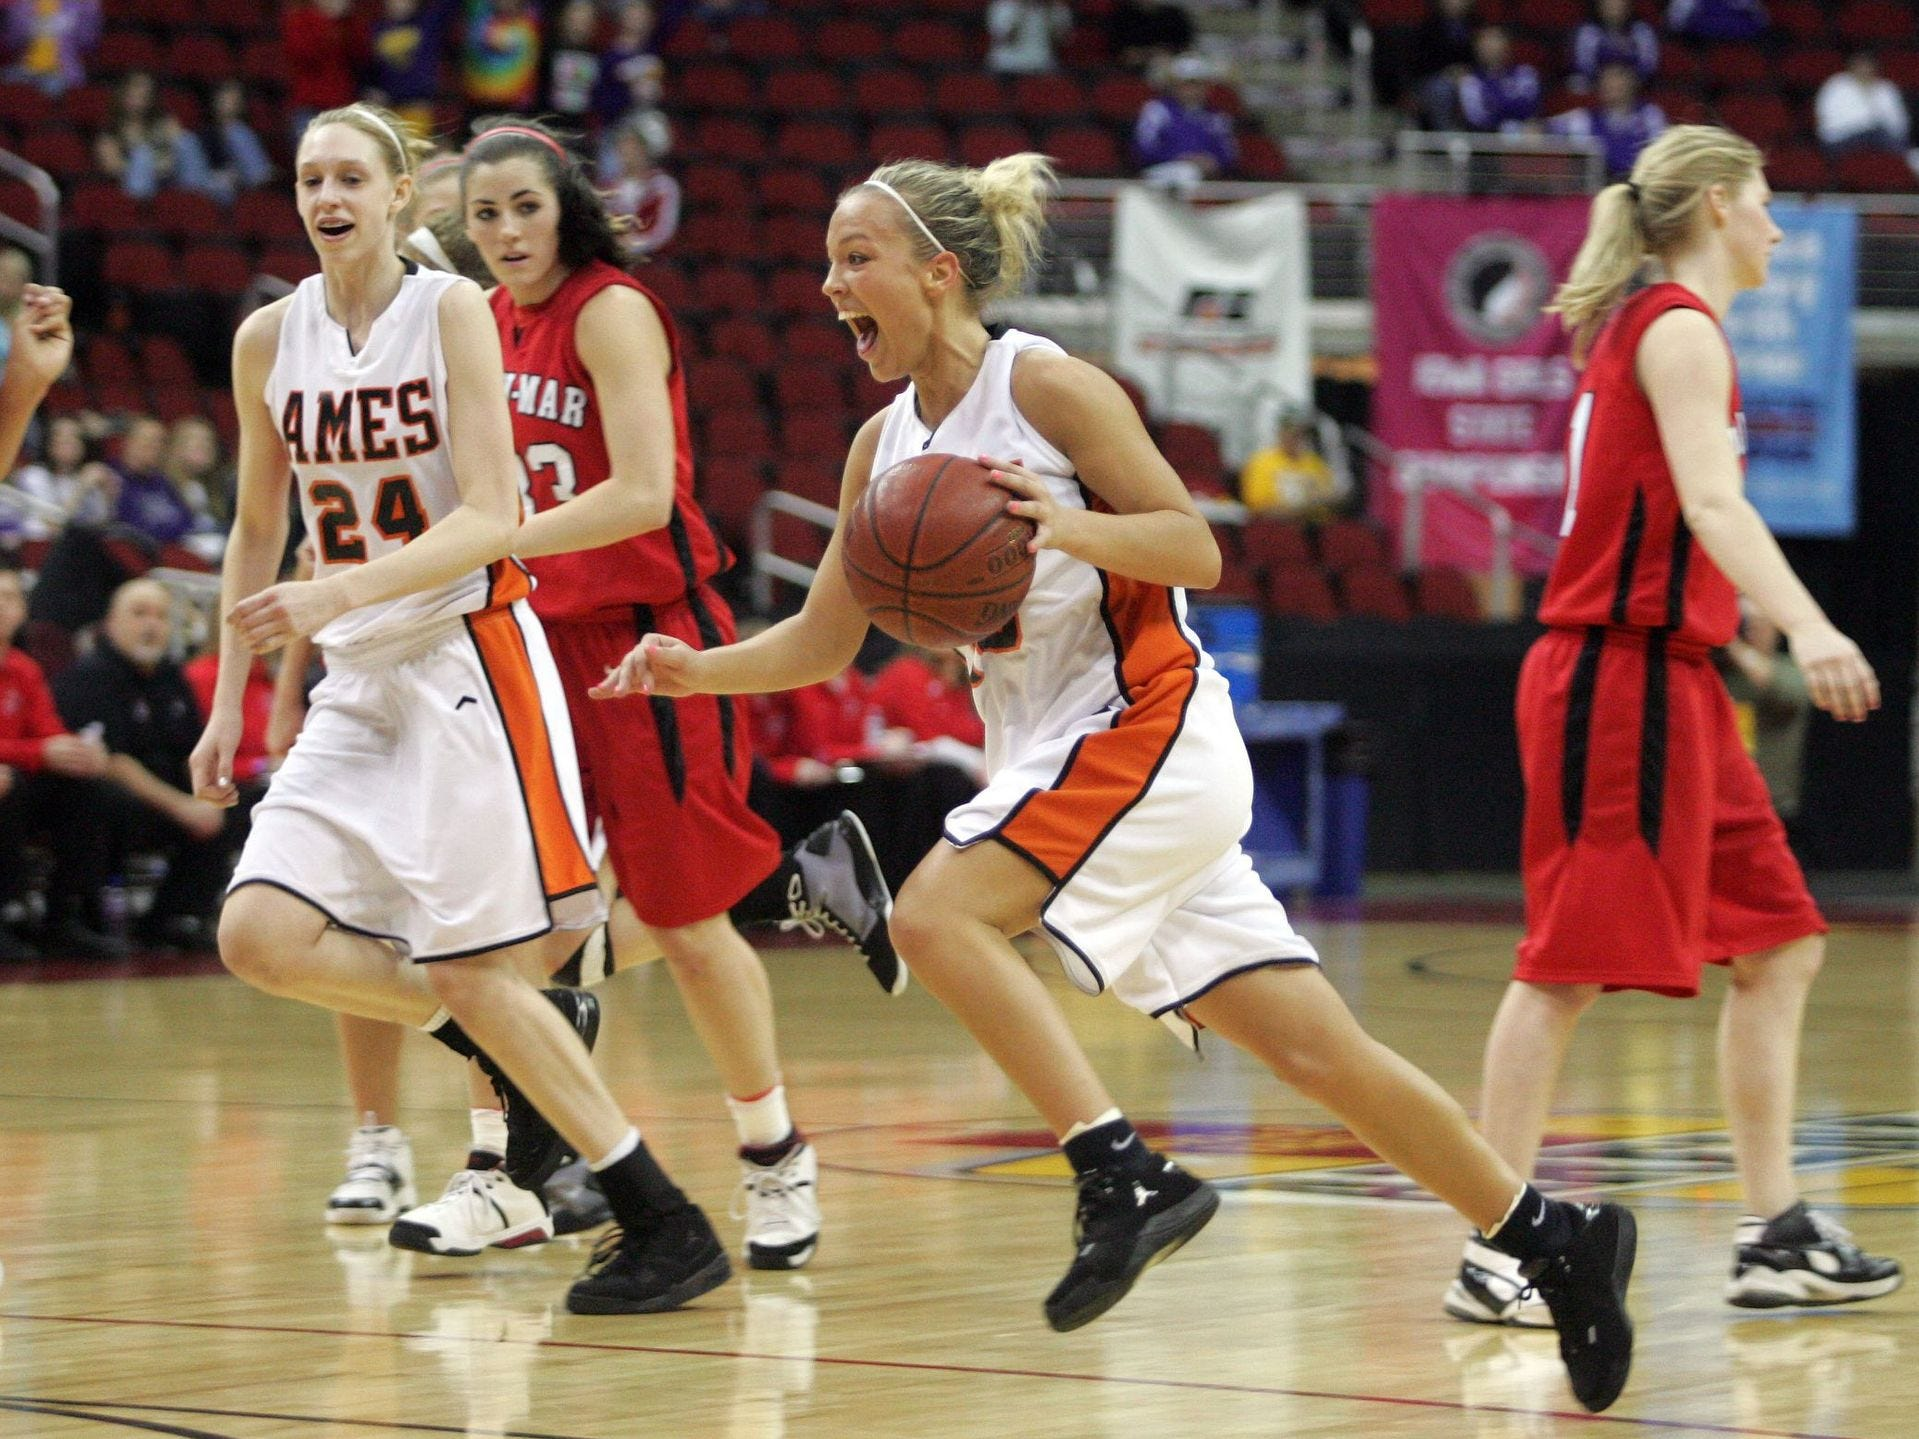 2009: Ames' Trisha Nesbitt dribbles the ball out at the buzzer as Ames upsets undefeated Linn-Mar during the Class 4A semifinals at the state girls' basketball tournament at Wells Fargo Arena . Register file photo